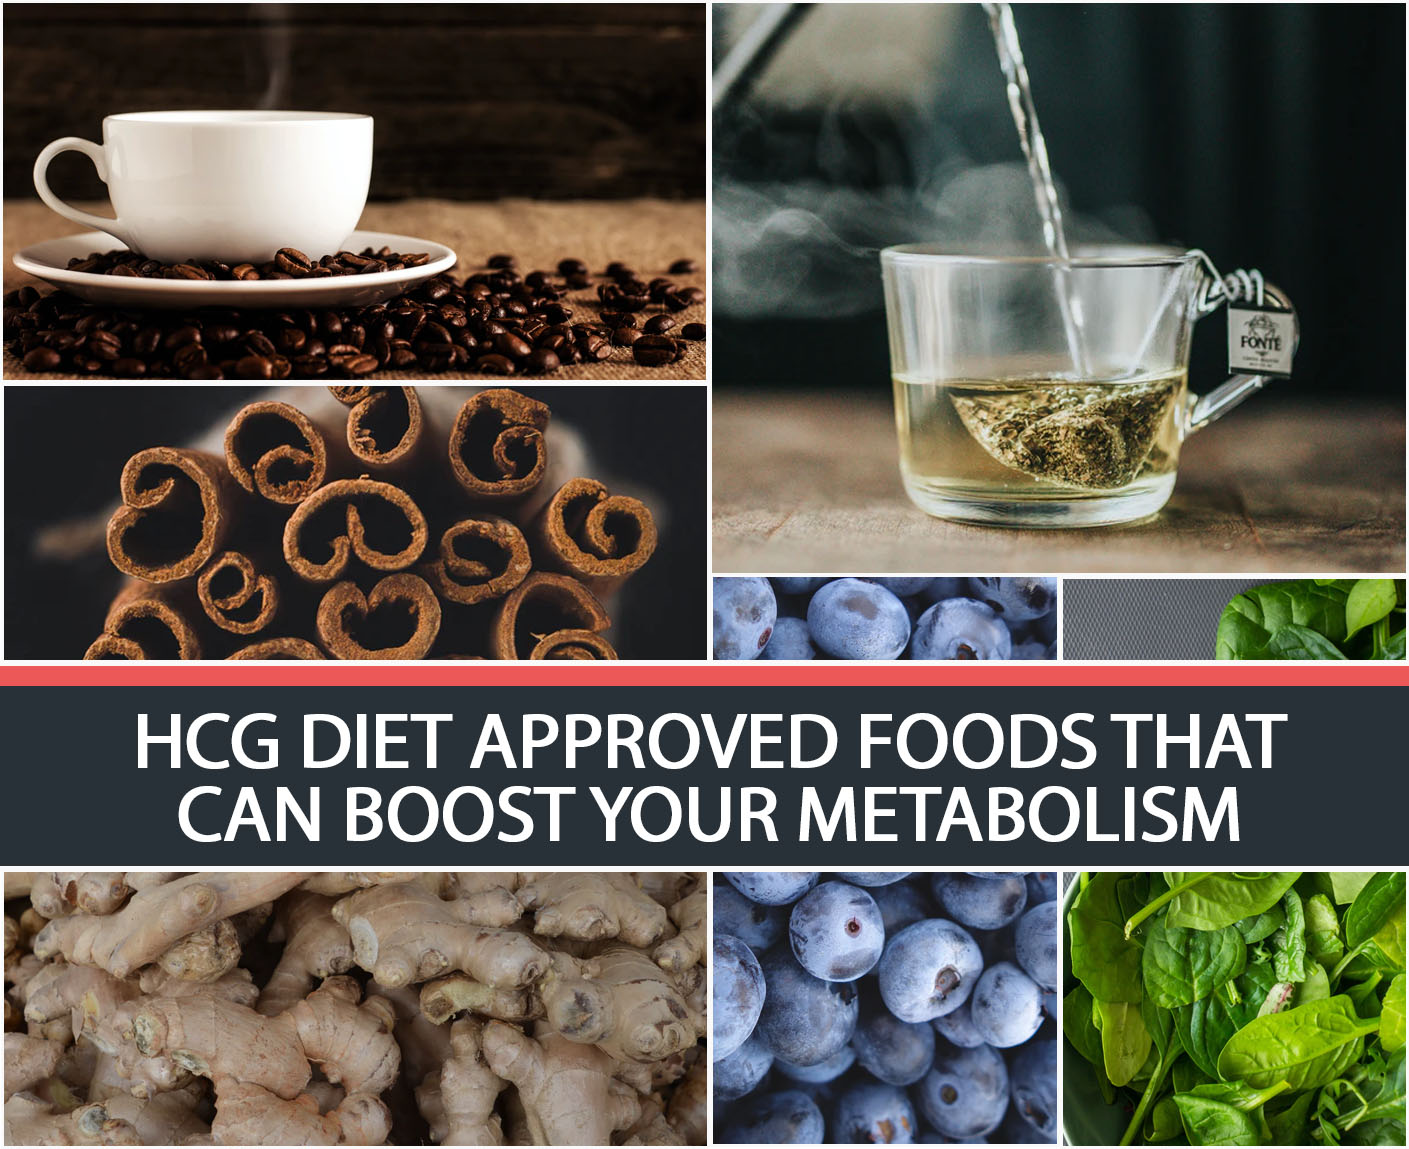 HCG DIET APPROVED FOODS THAT CAN BOOST YOUR METABOLISM